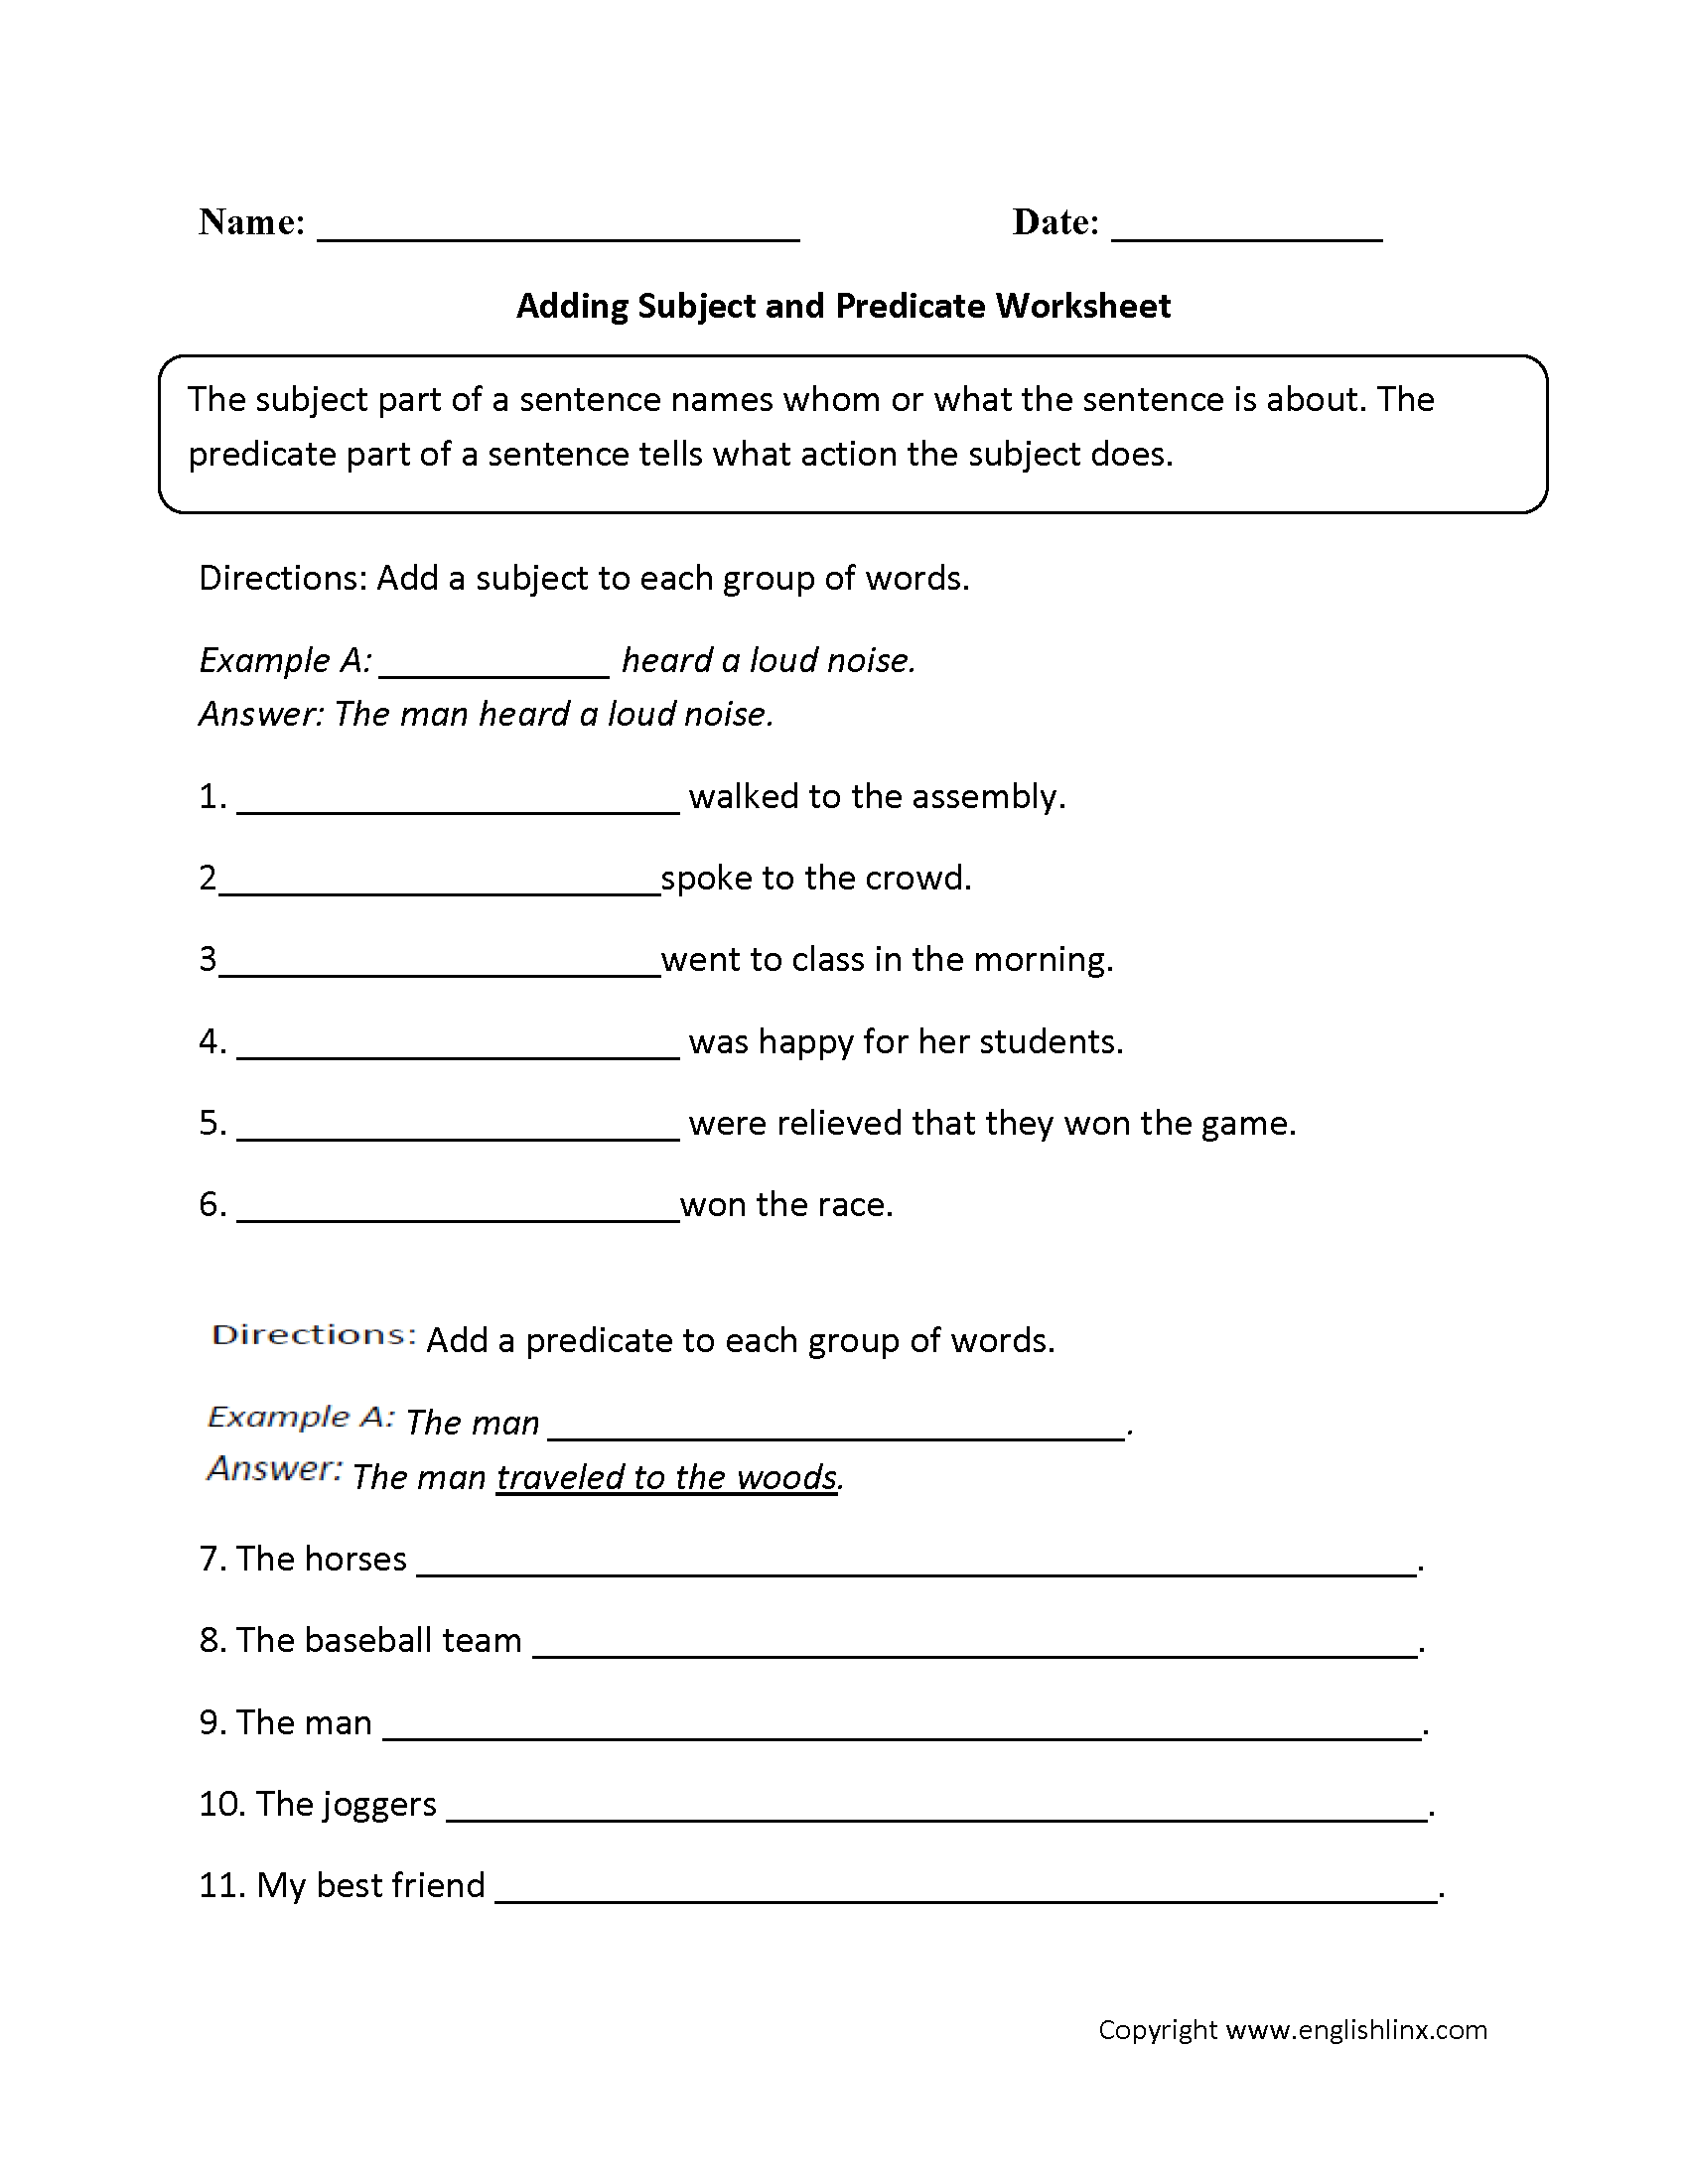 Worksheets 4th Grade English Worksheets Grammar parts of a sentence worksheets subject and predicate adding predicateworksheet